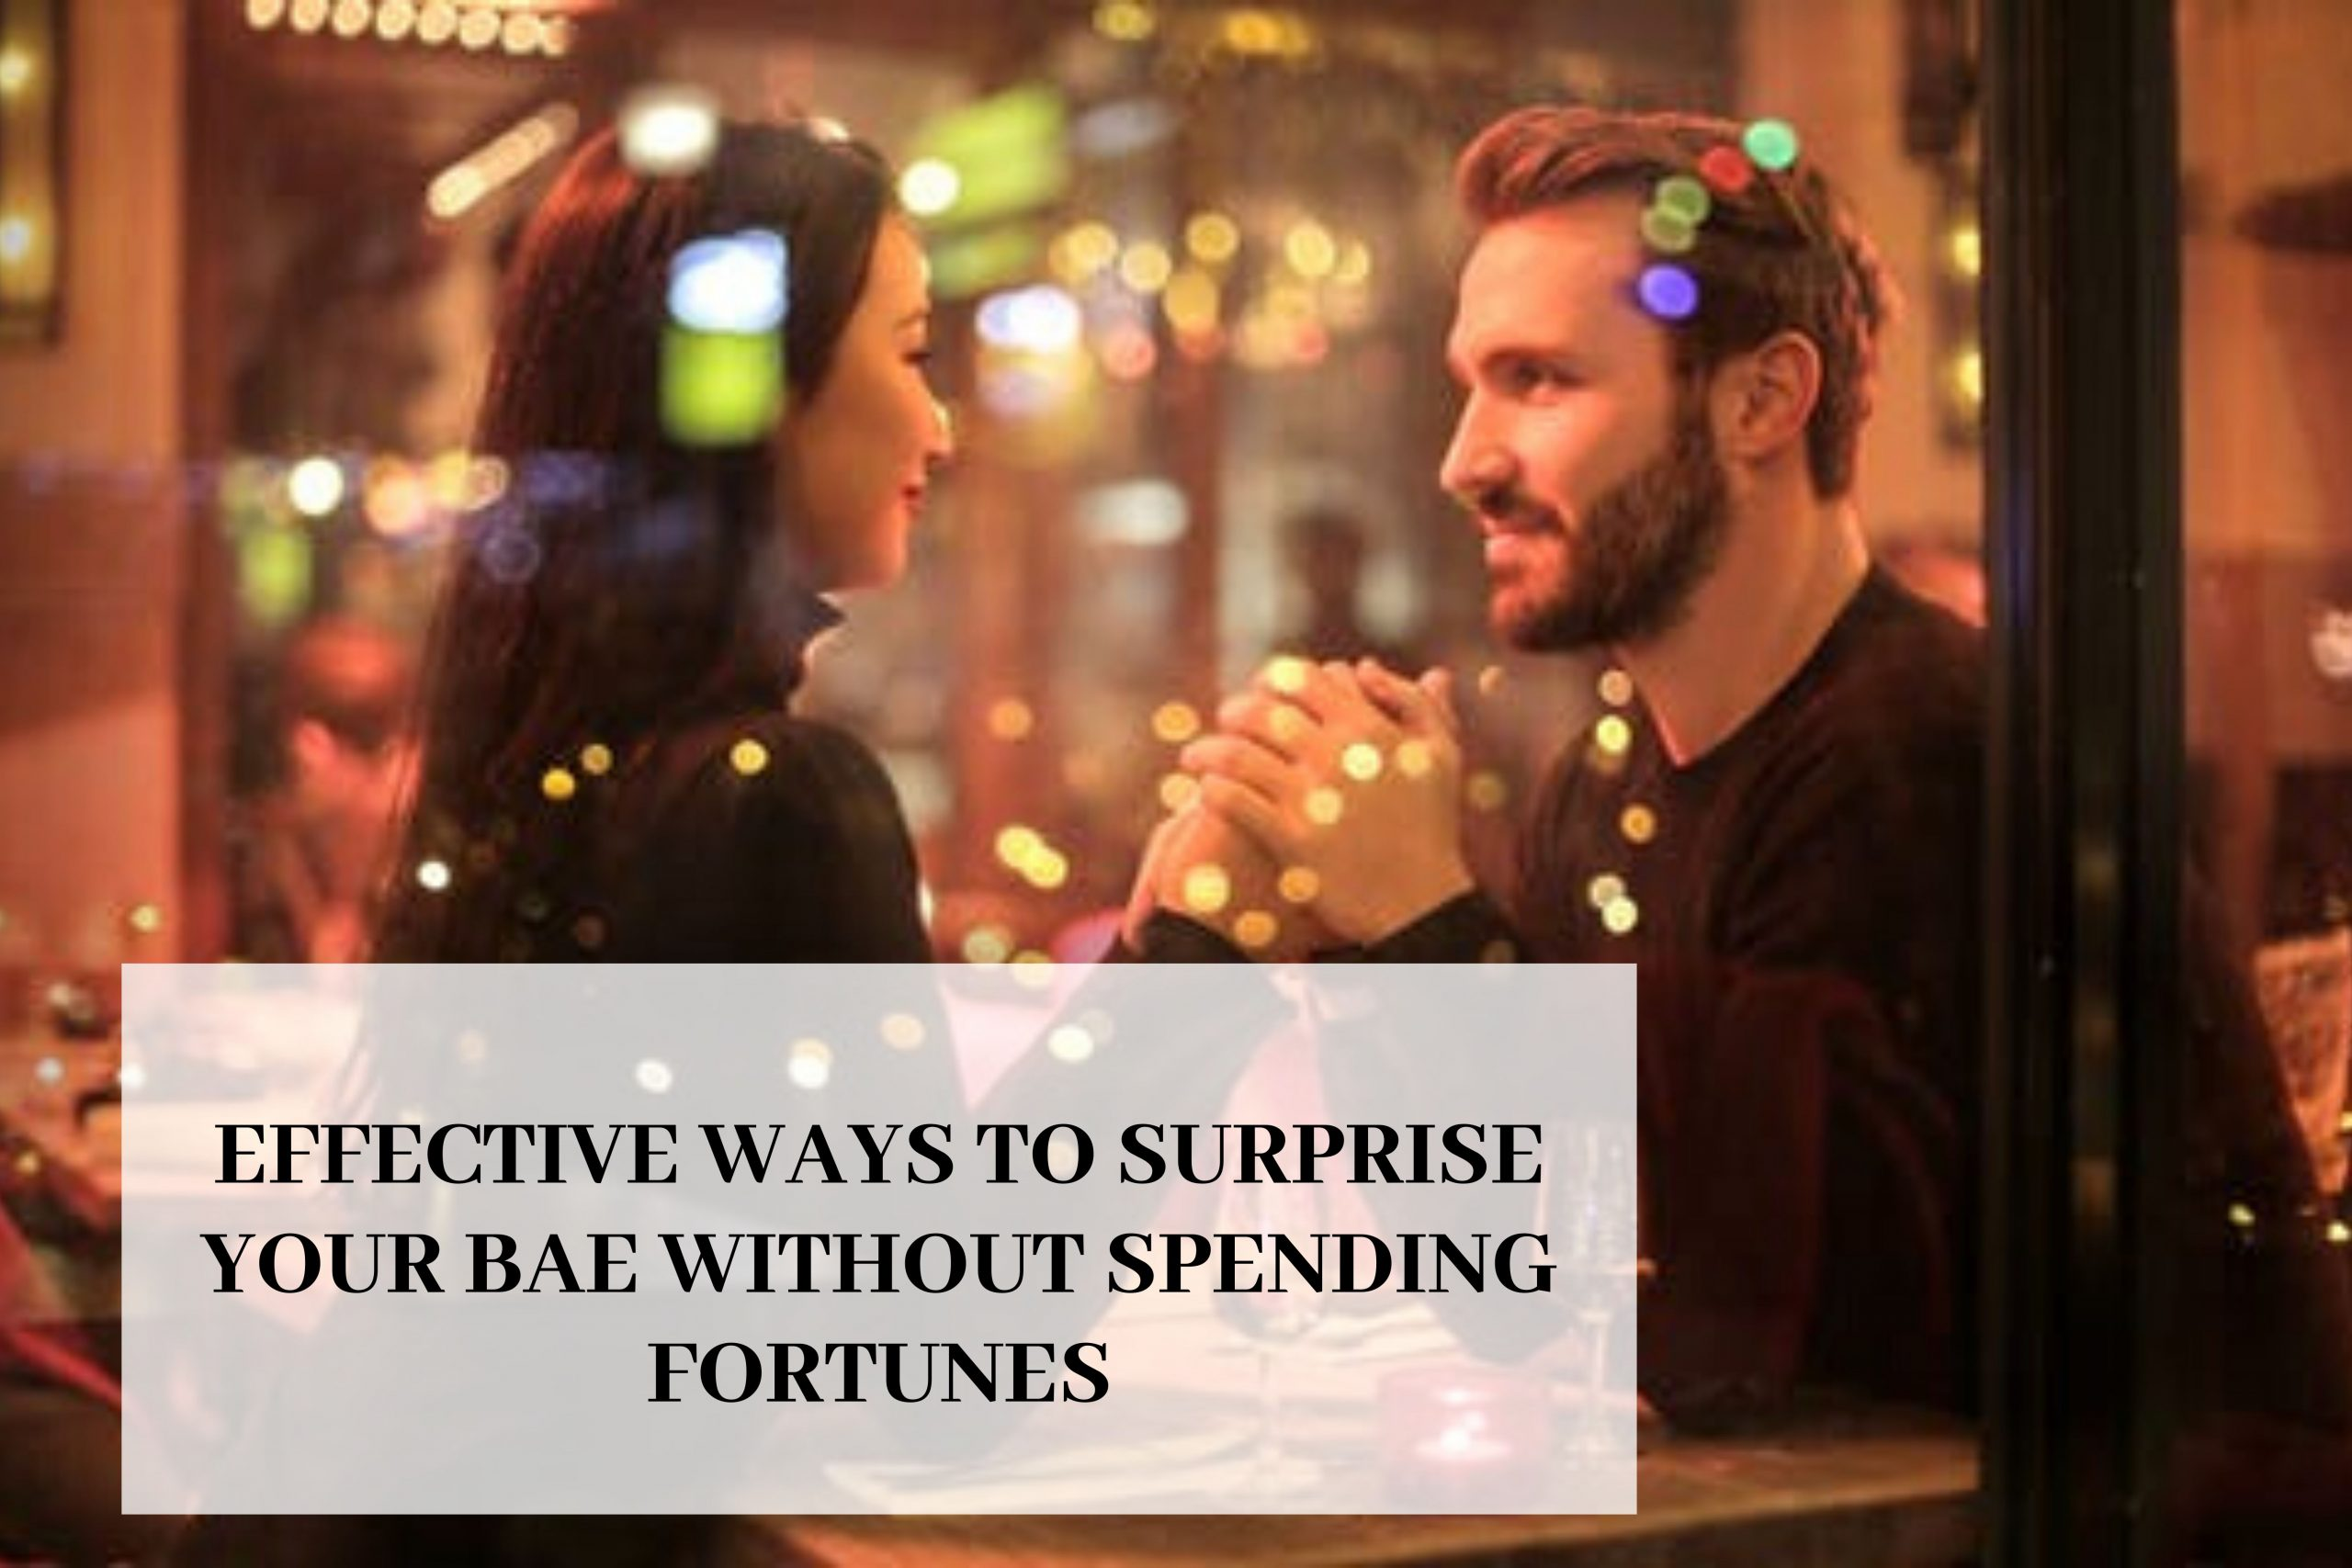 Effective Ways to surprise your bae without spending fortunes